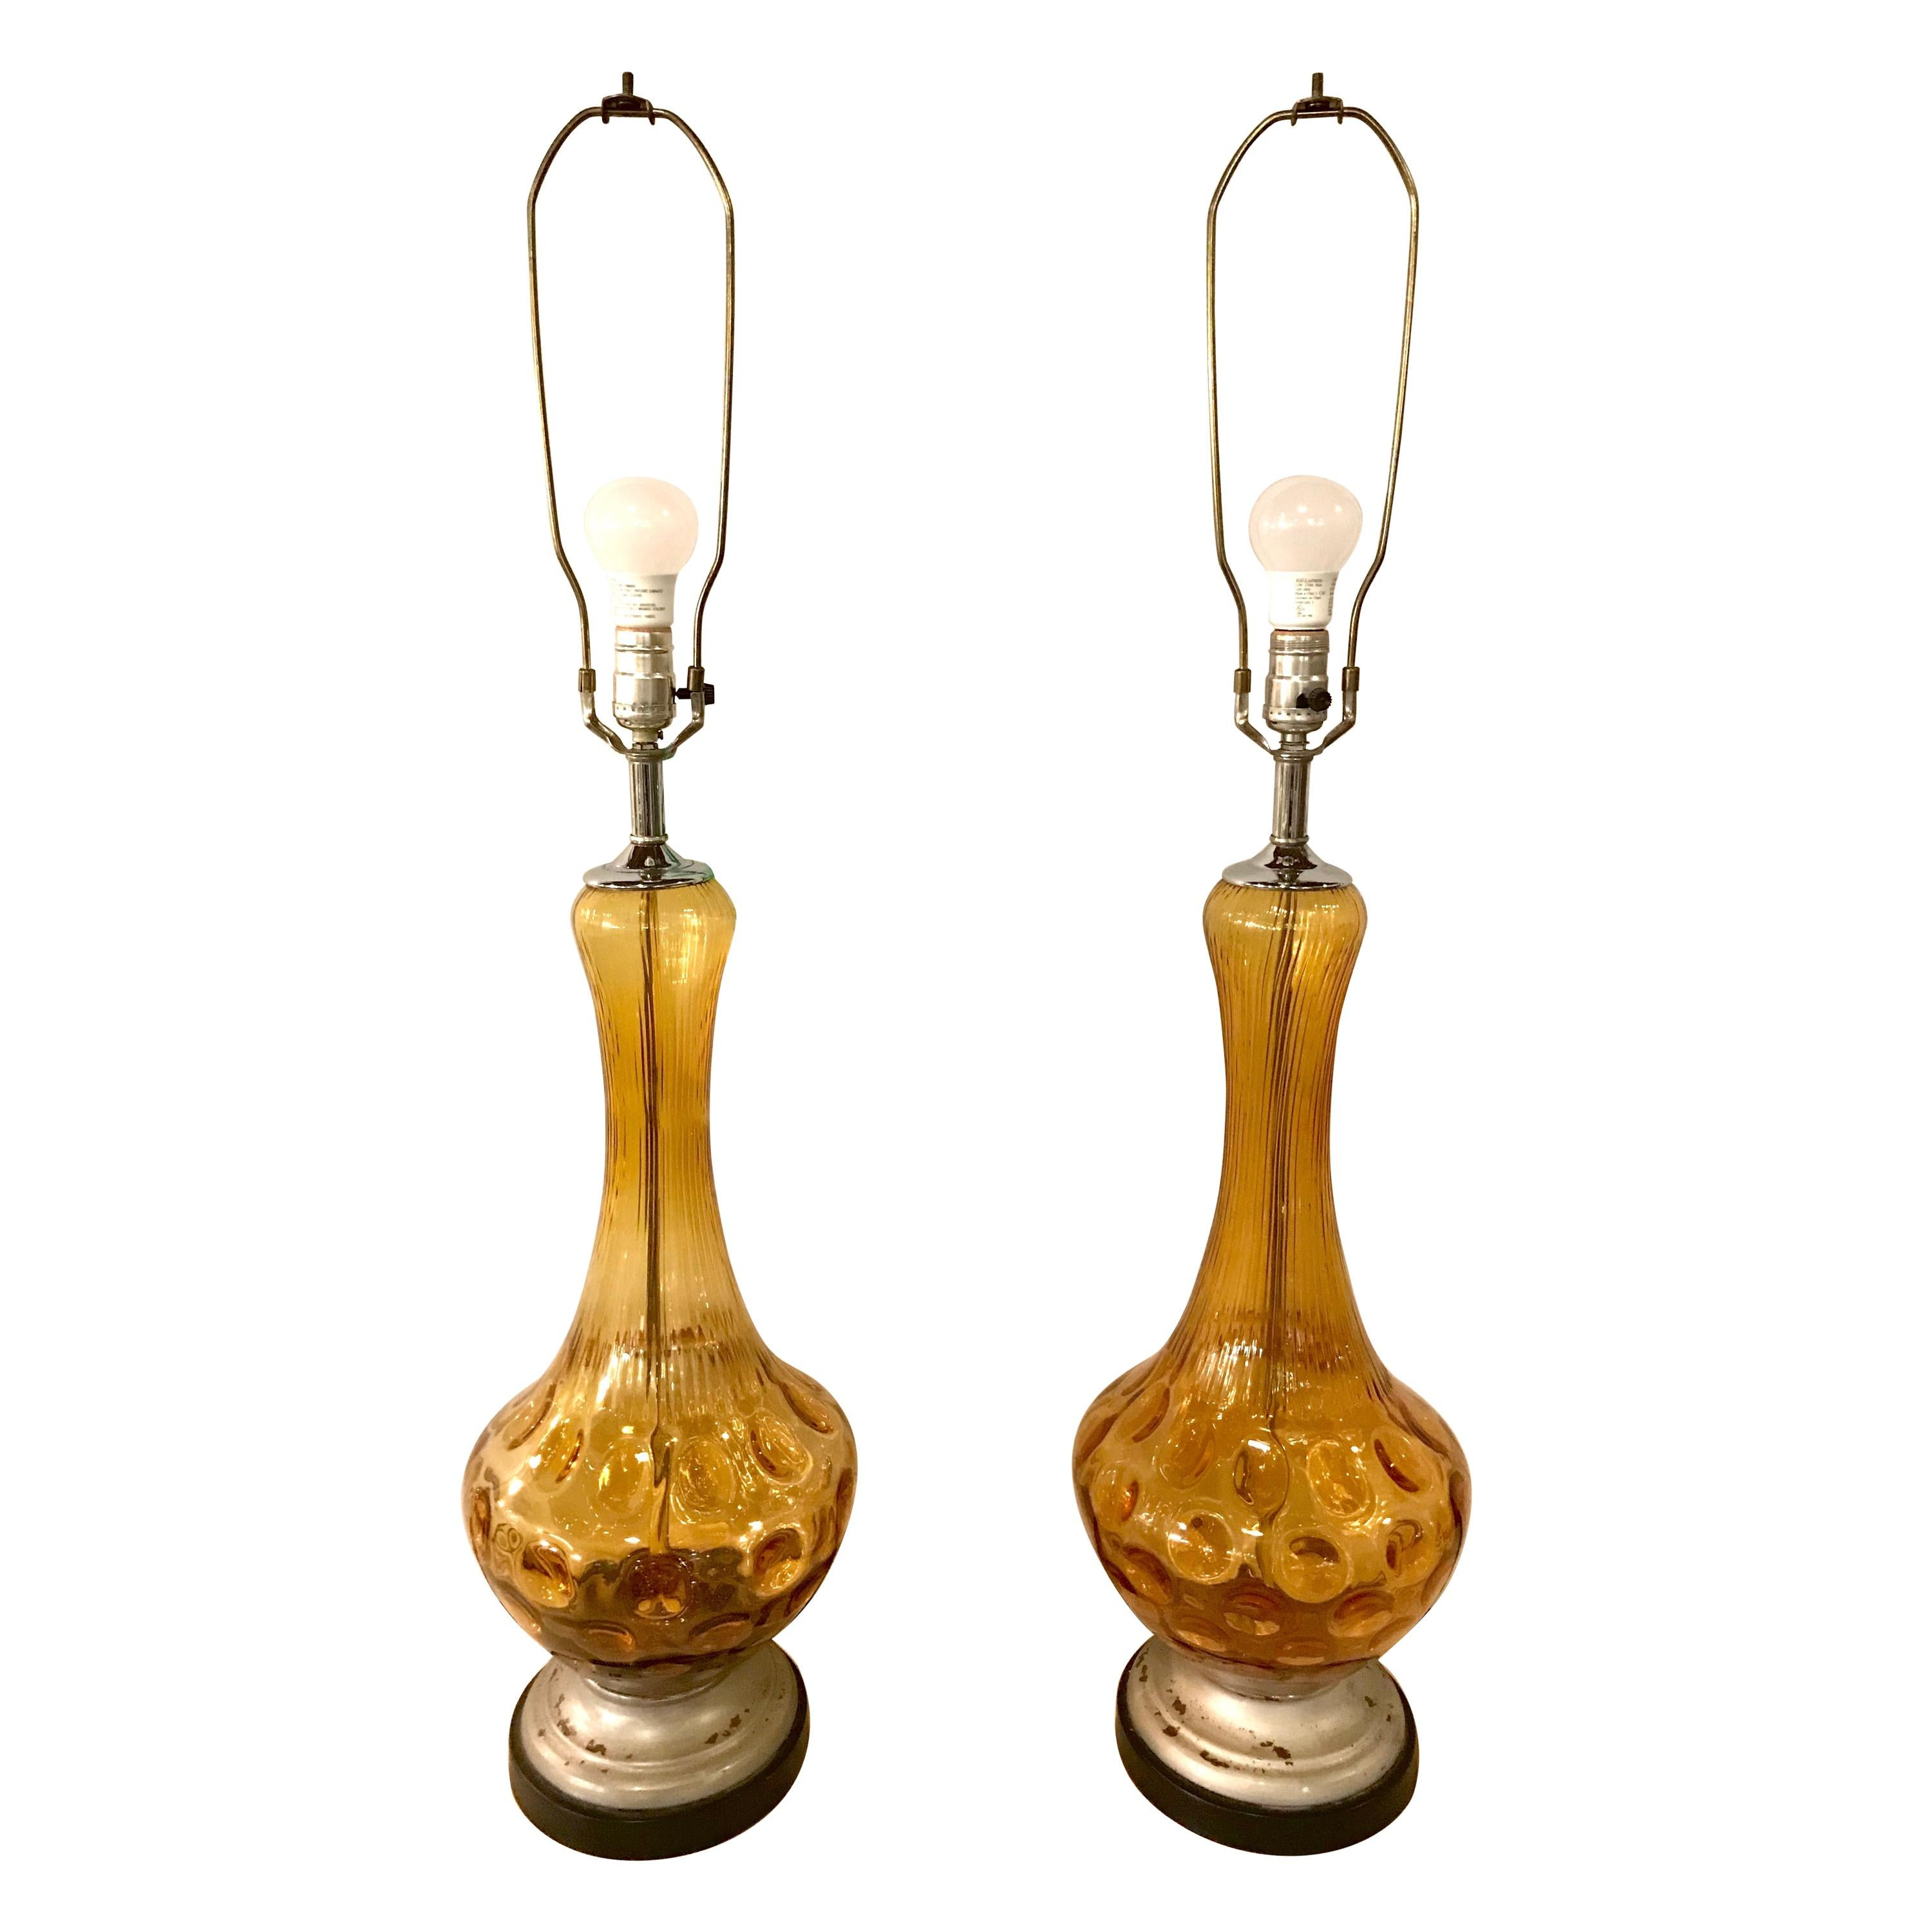 Pair of Art Deco Style Sculpted Amber Glass Lamps